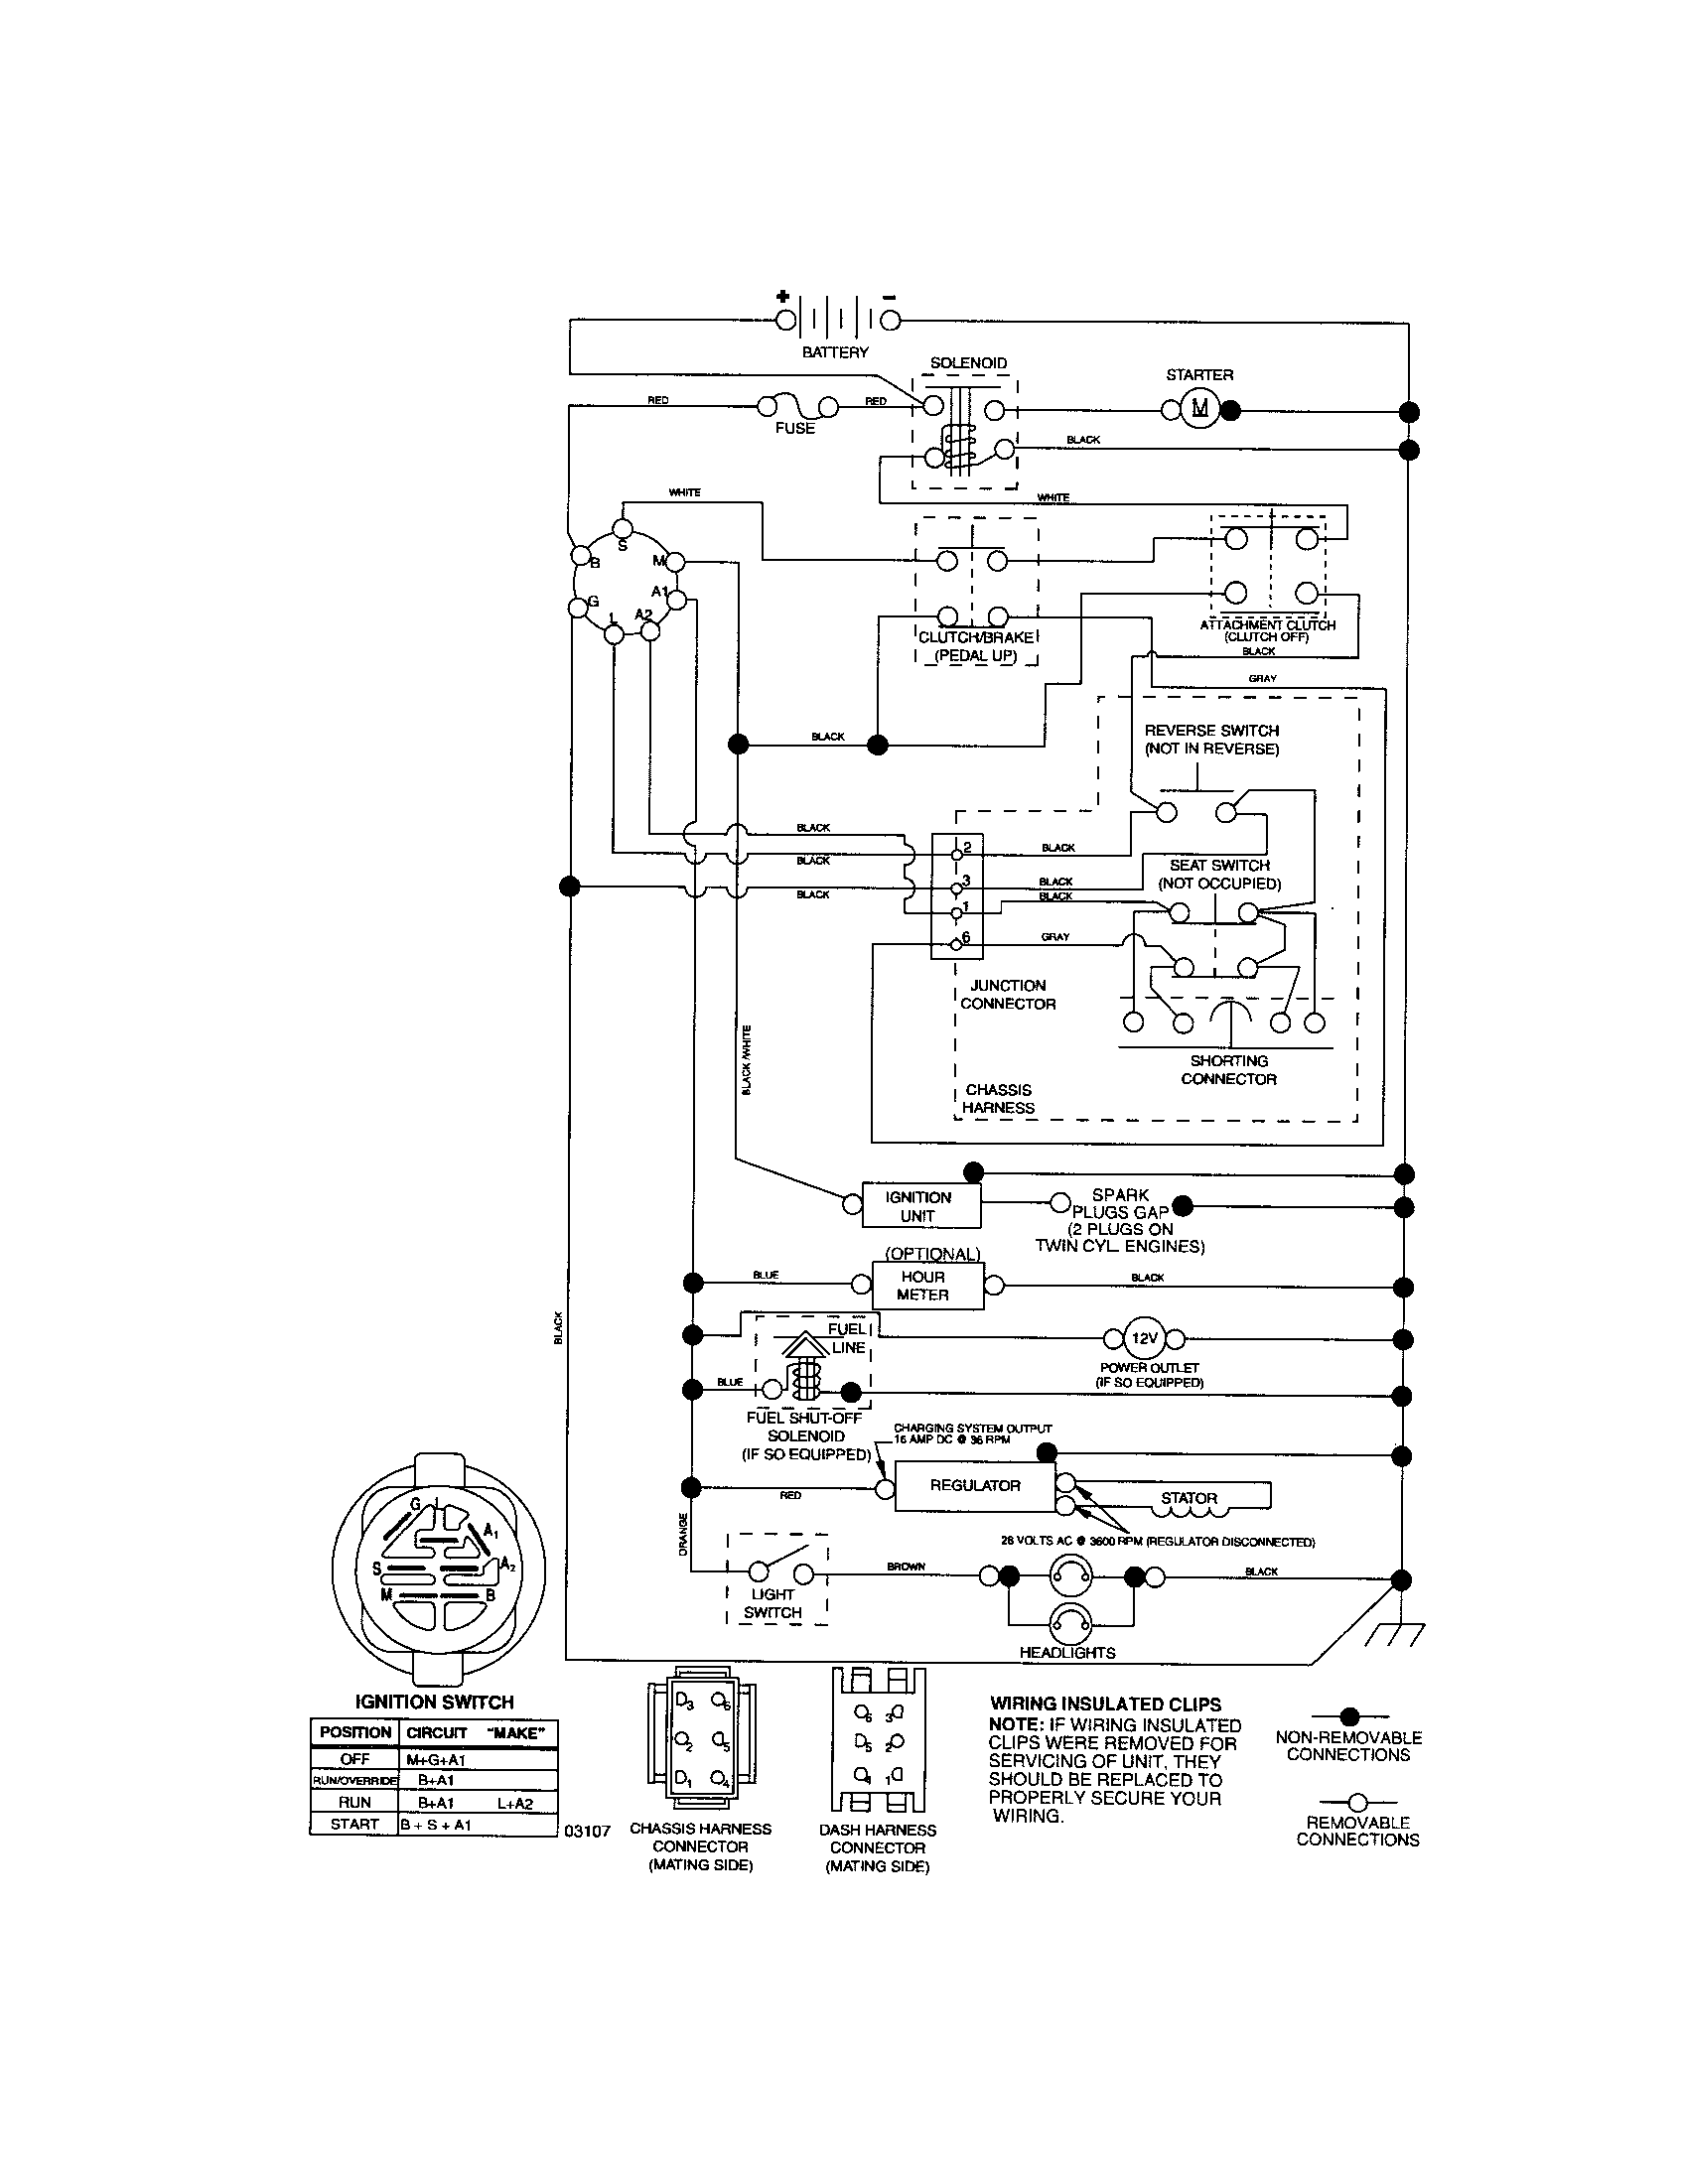 hight resolution of craftsman riding mower electrical diagram wiring diagram craftsman craftsman garage door opener wiring schematic craftsman riding